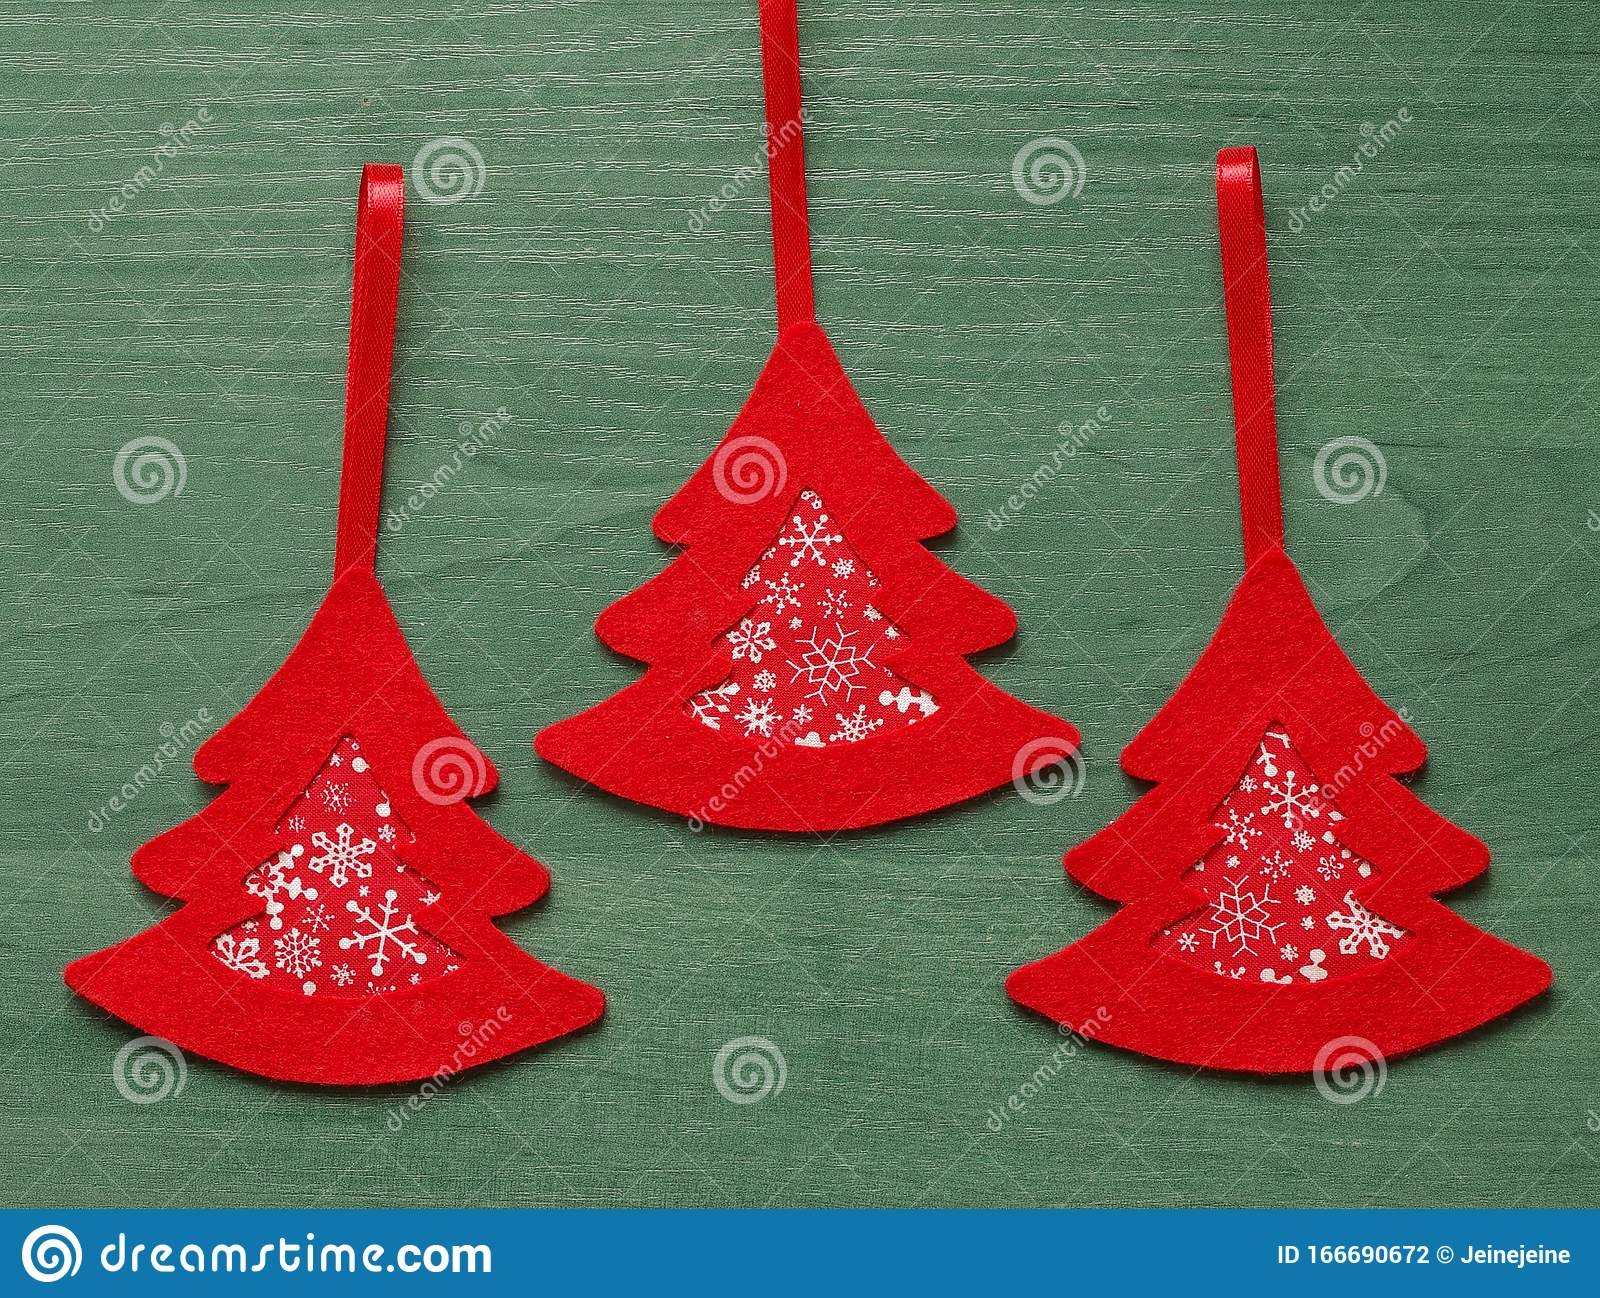 White Wooden Christmas Tree With Felt Decor On A Green Background Stock Photo Image Of White Green 166690672